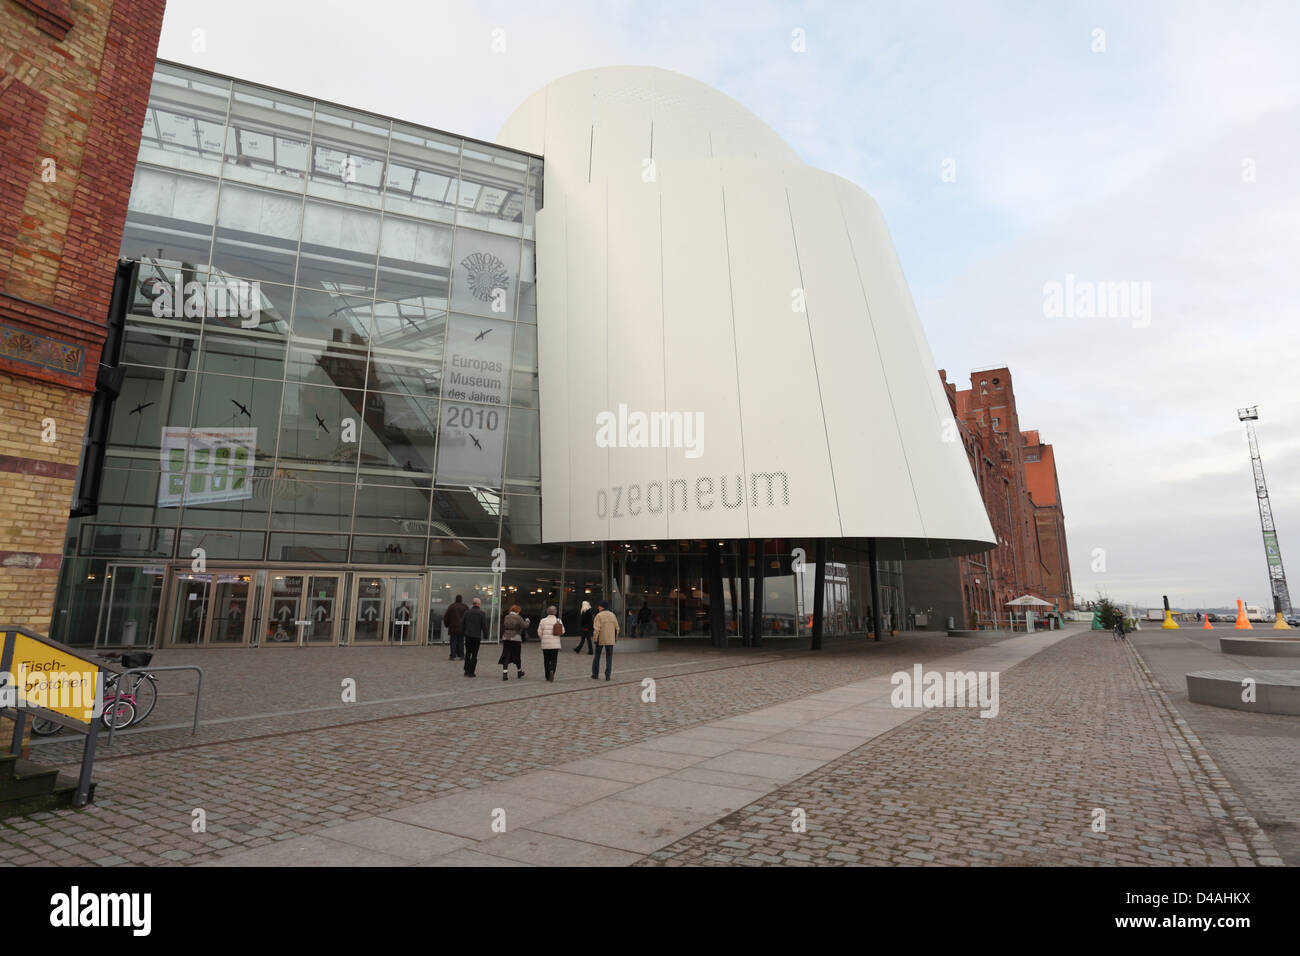 ozeaneum stralsund deutschland museum of natural history stockfoto bild 54323134 alamy. Black Bedroom Furniture Sets. Home Design Ideas